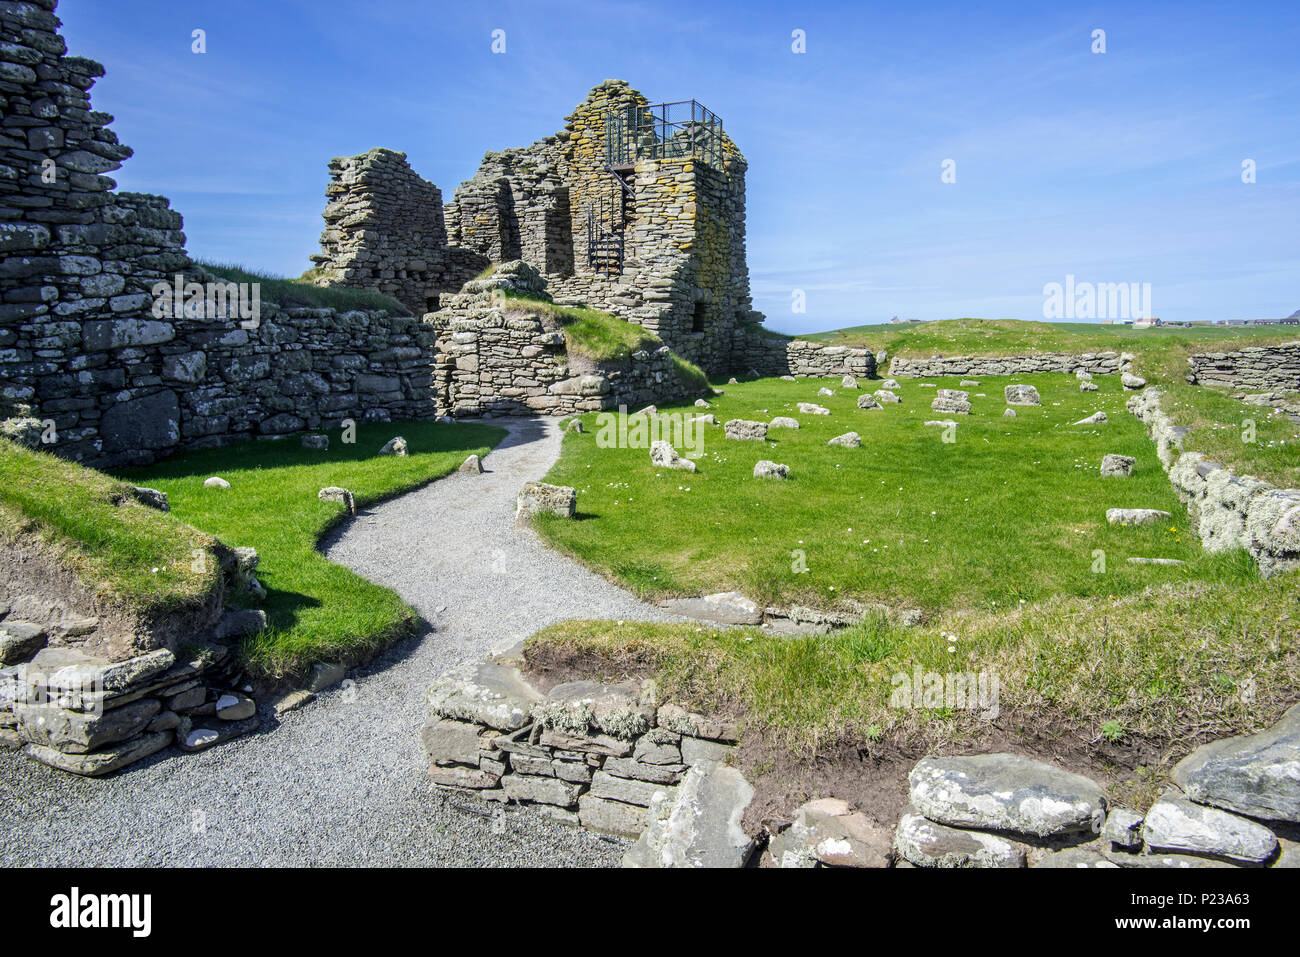 17th century laird's house at Jarlshof, archaeological site prehistoric and Norse settlements at Sumburgh Head, Shetland Islands, Scotland, UK - Stock Image